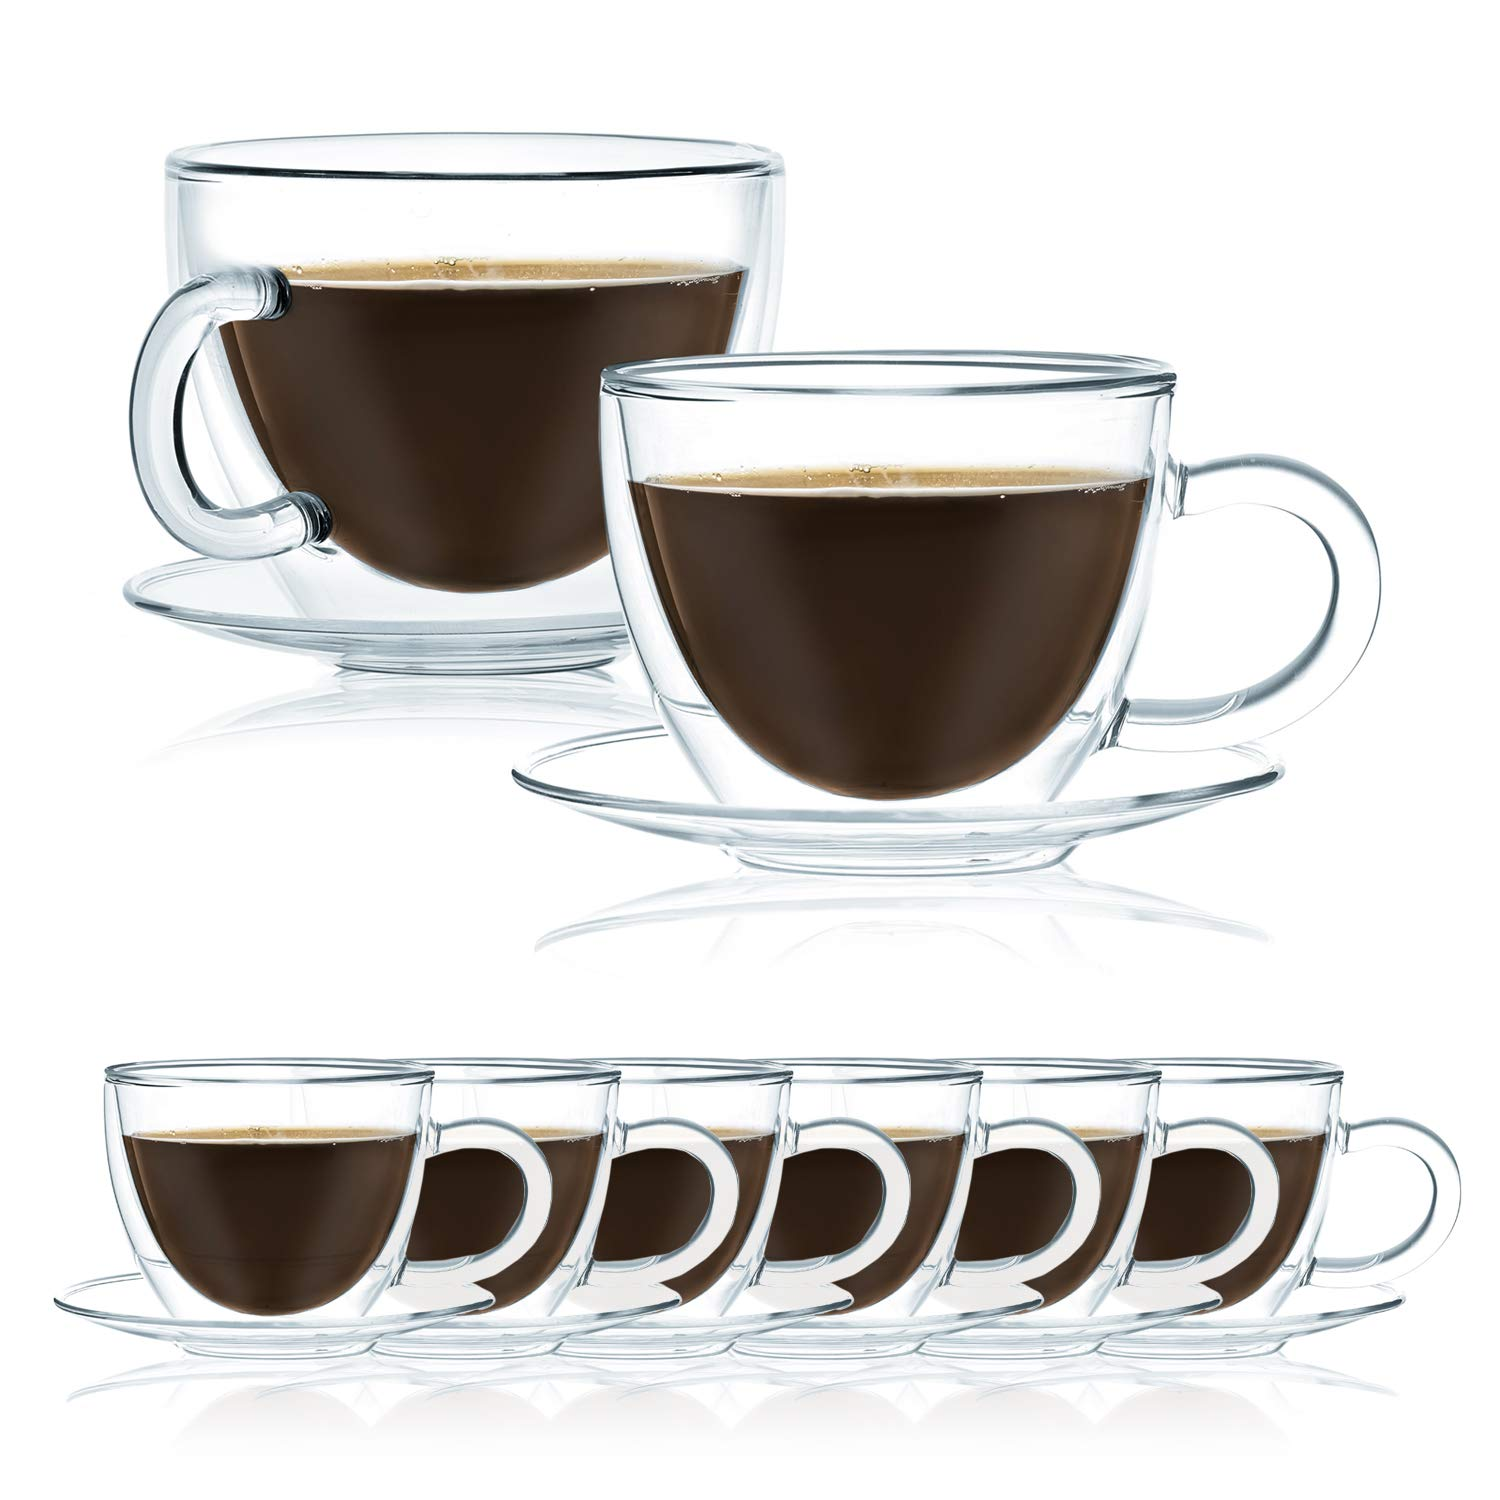 JavaFly Apia Double Wall Mug with Saucer 12 oz, 8 Pack